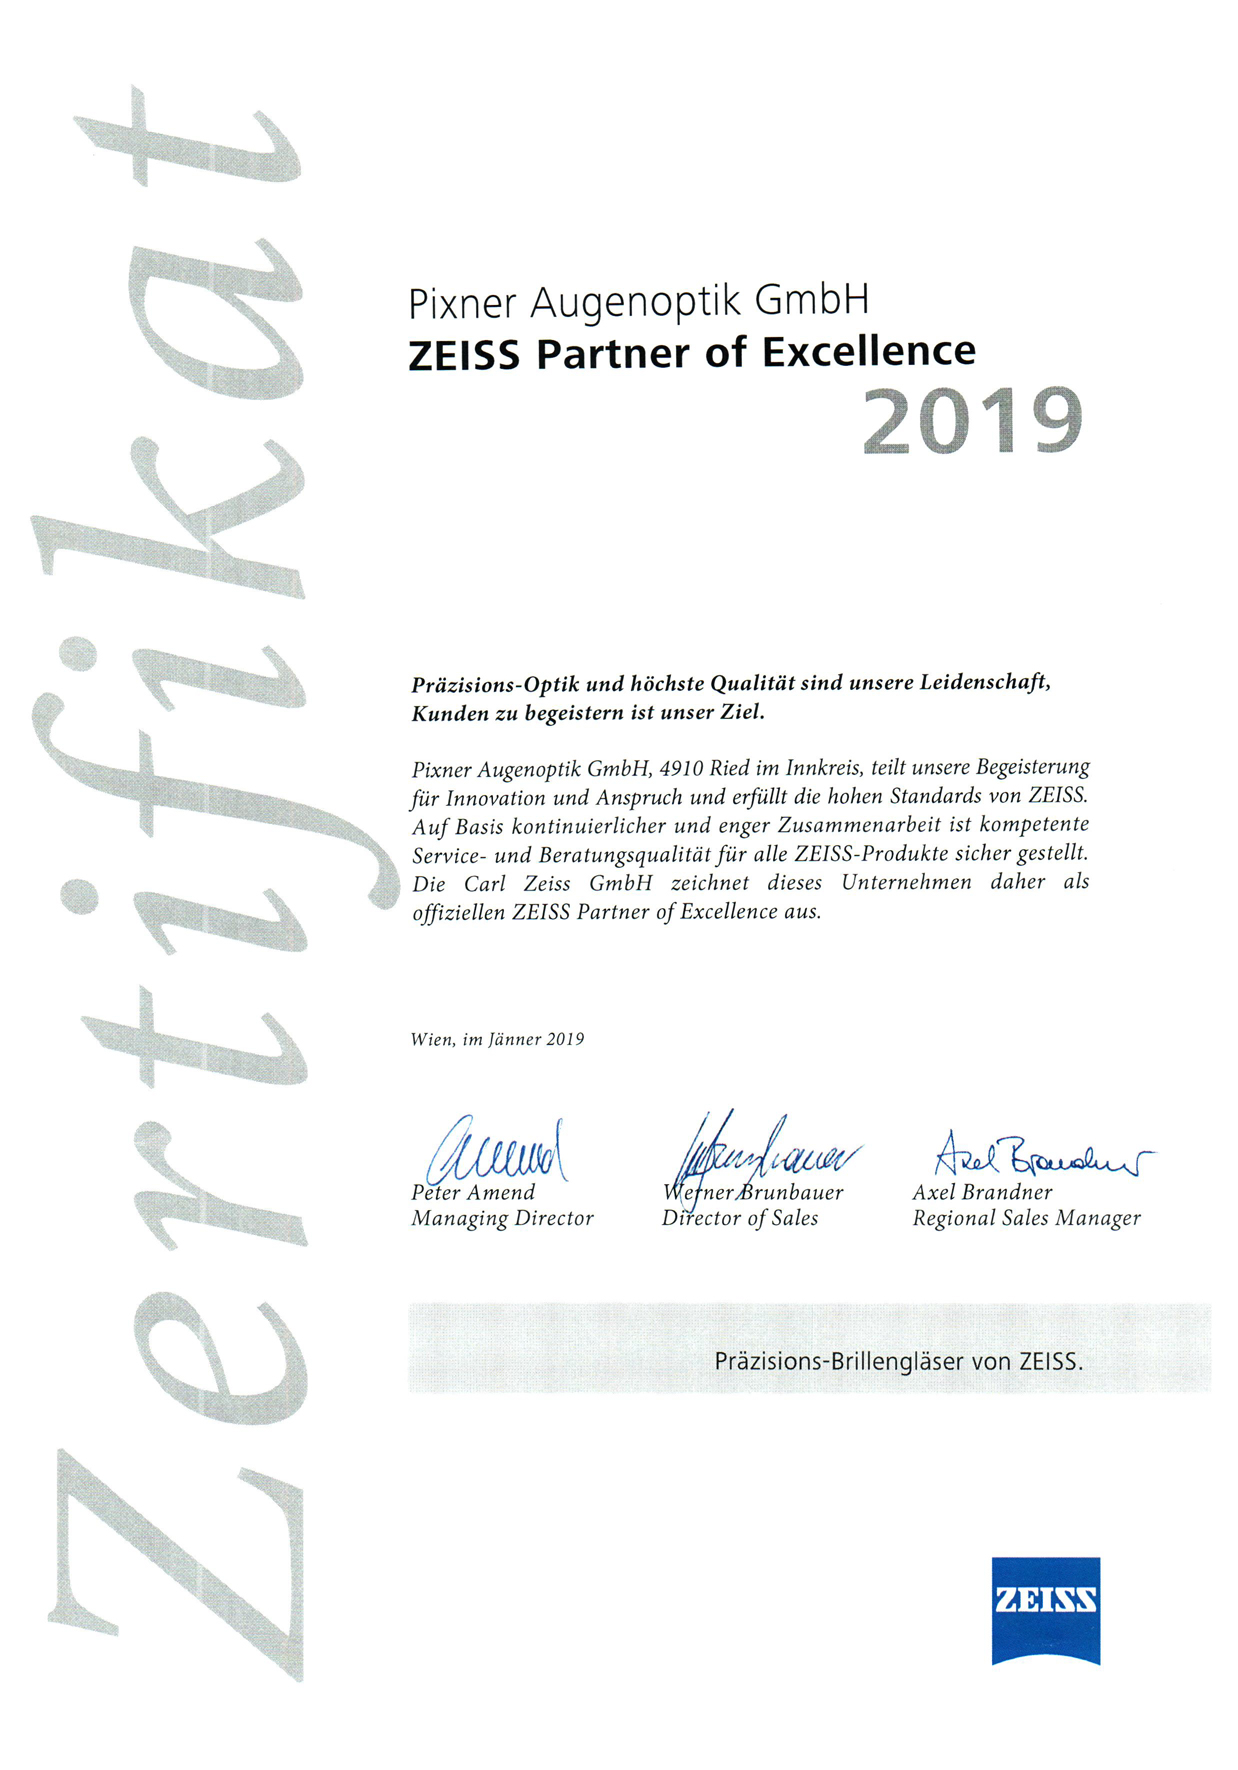 zeiss-partner-of-excellence-2019.jpg